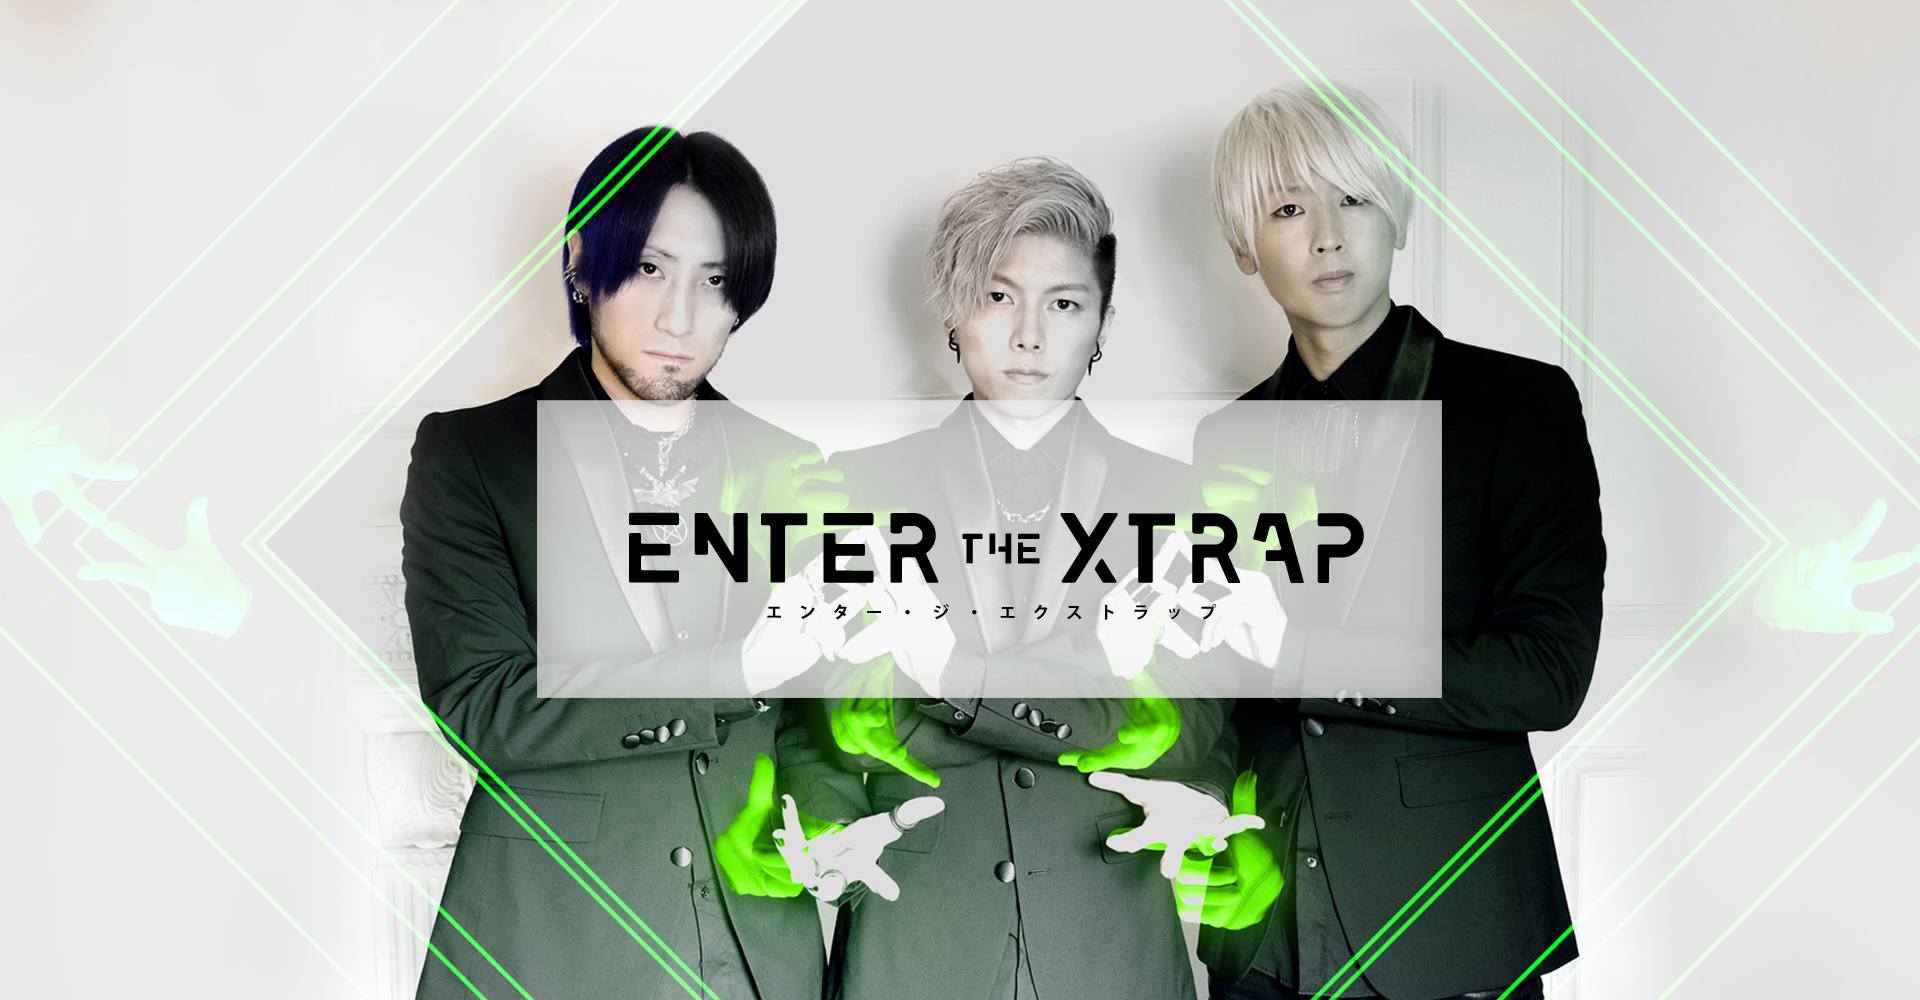 2017/8/31 ENTER THE XTRAP